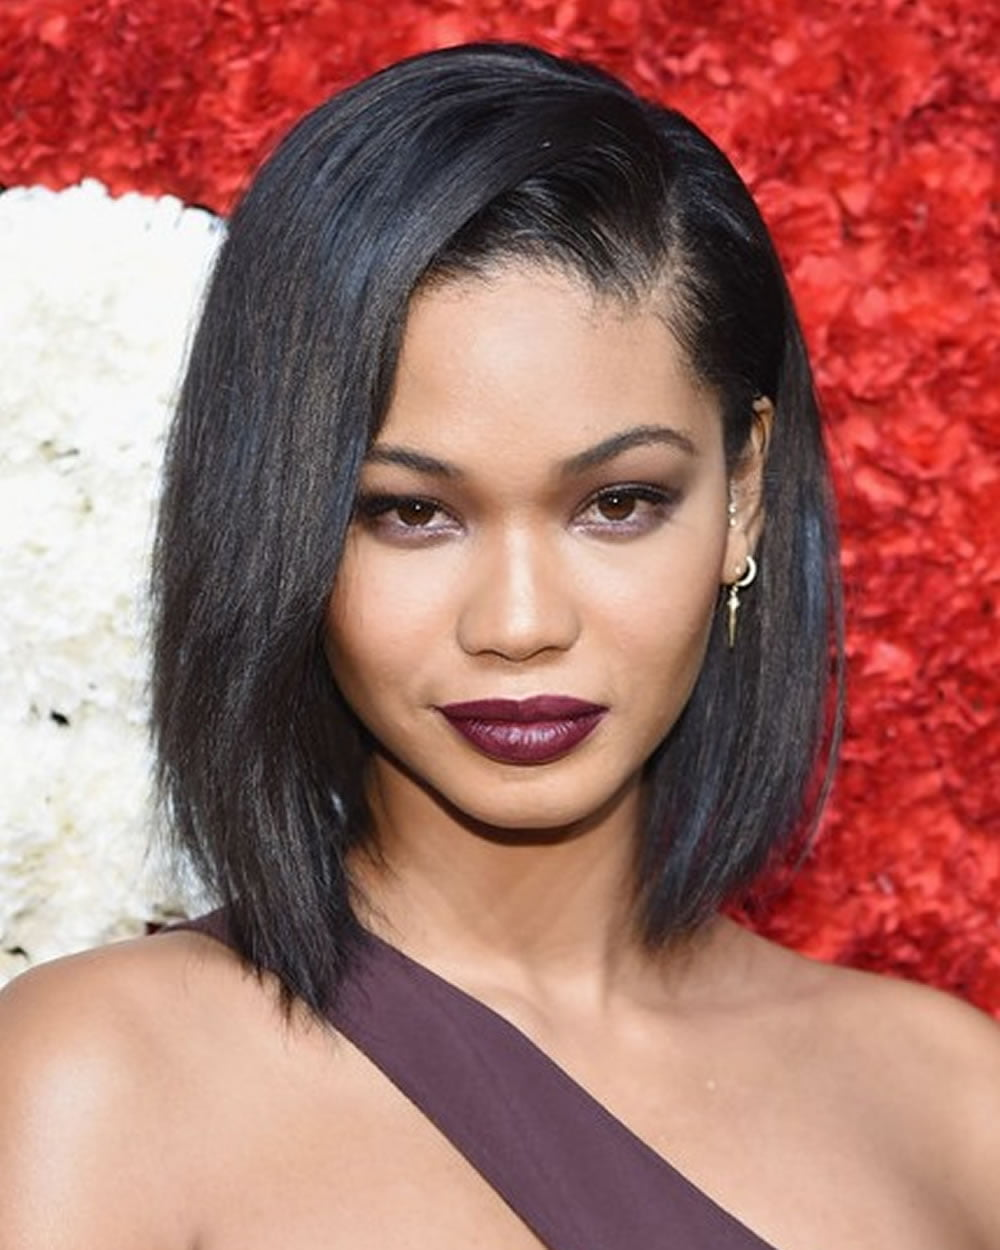 Short Bob Hair for African-American Women 2018-2019 - Page ...